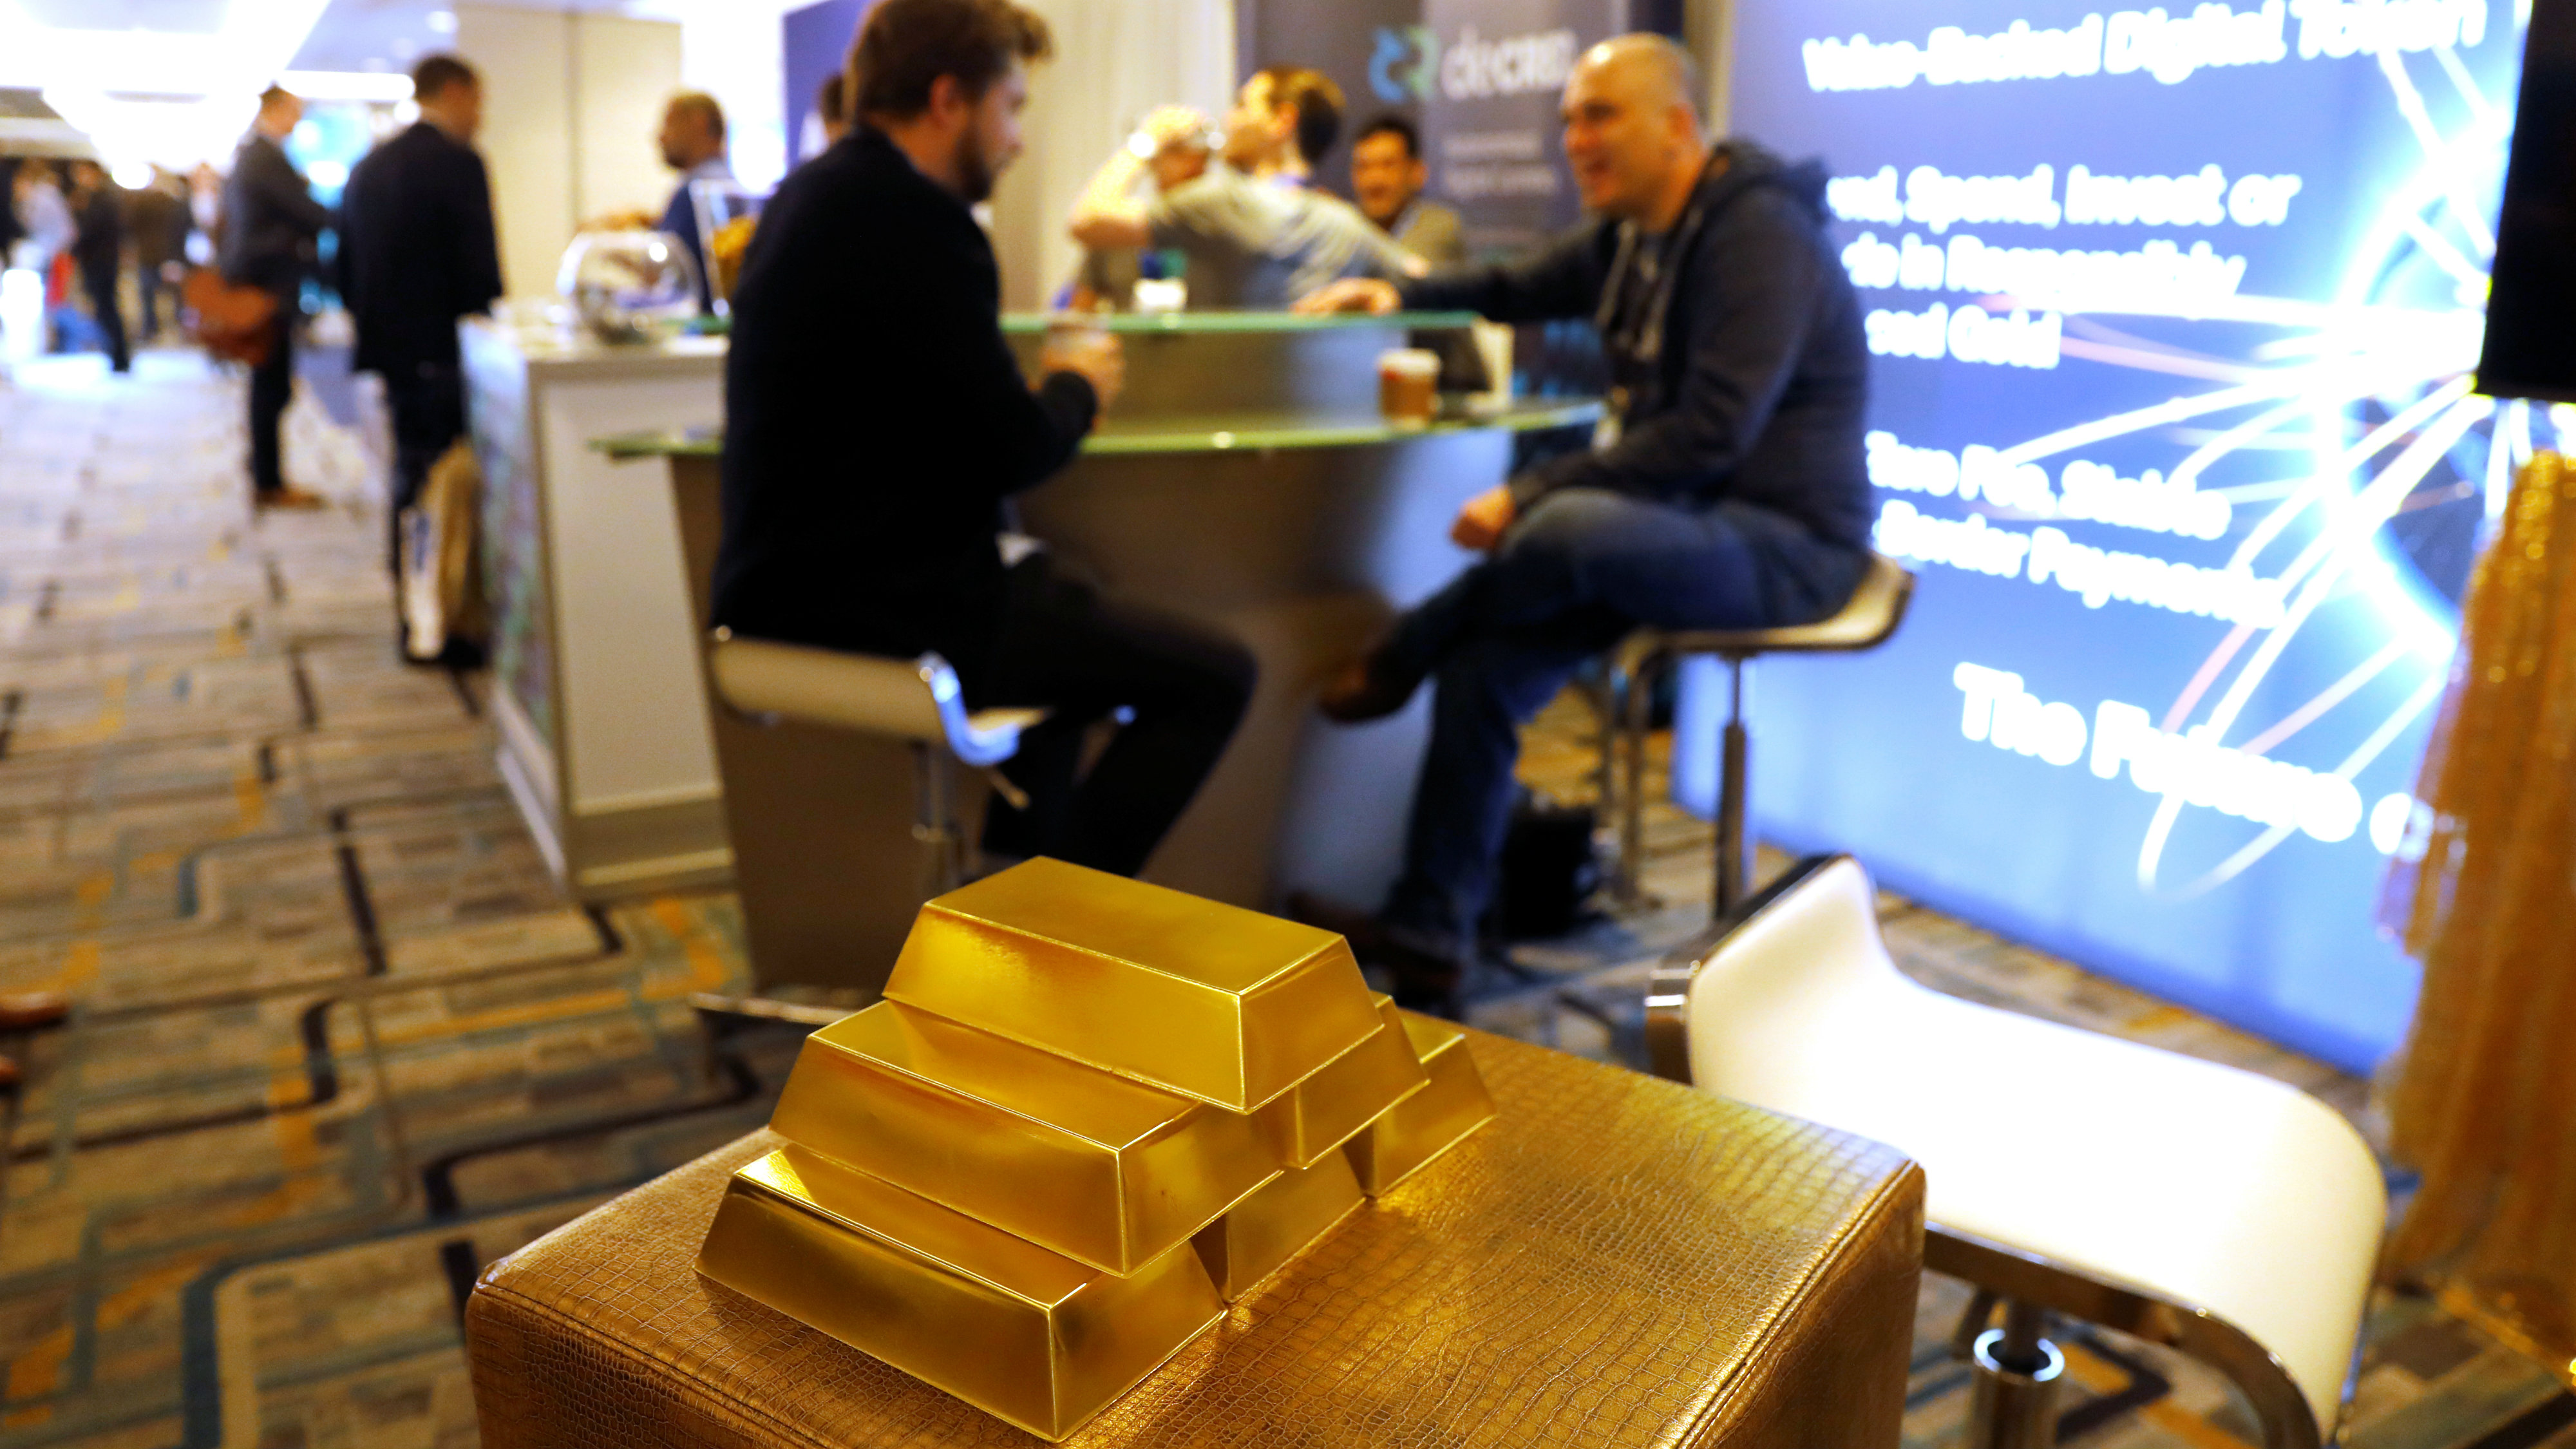 Imitation gold bars are seen displayed at a vendor's booth on the floor of the Consensus 2018 blockchain technology conference in New York City, New York, U.S., May 16, 2018.